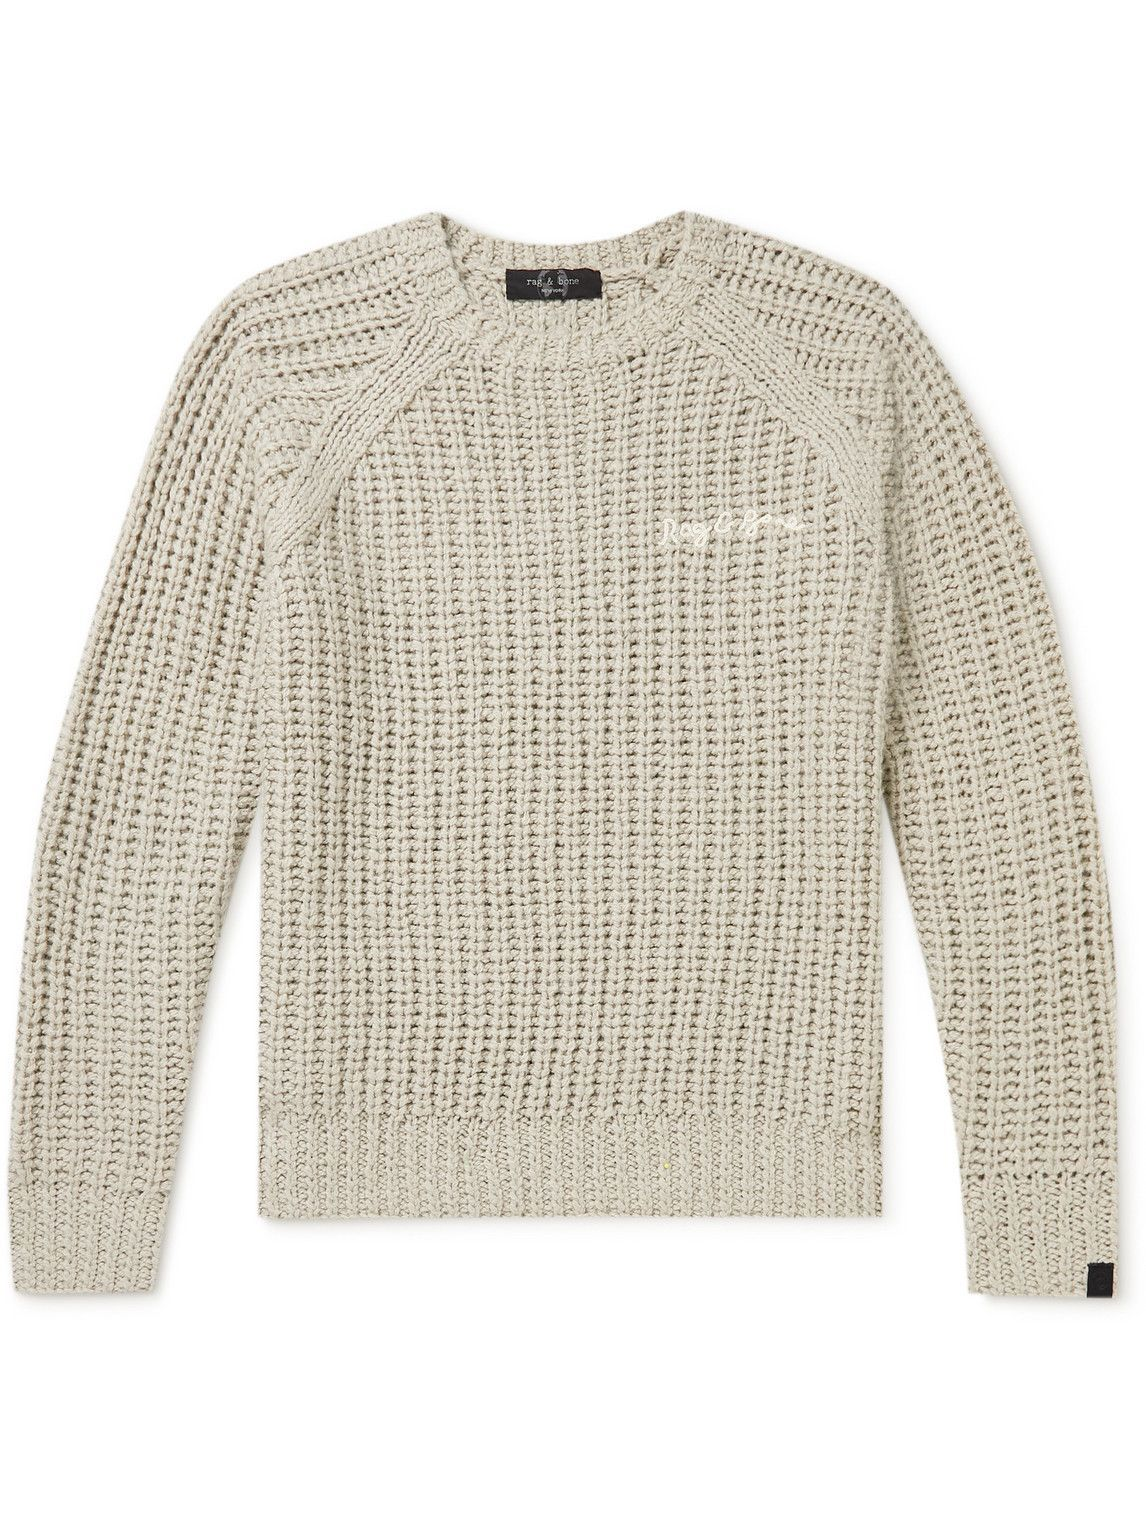 Photo: Rag & Bone - Logo-Embroidered Ribbed-Knit Sweater - Gray